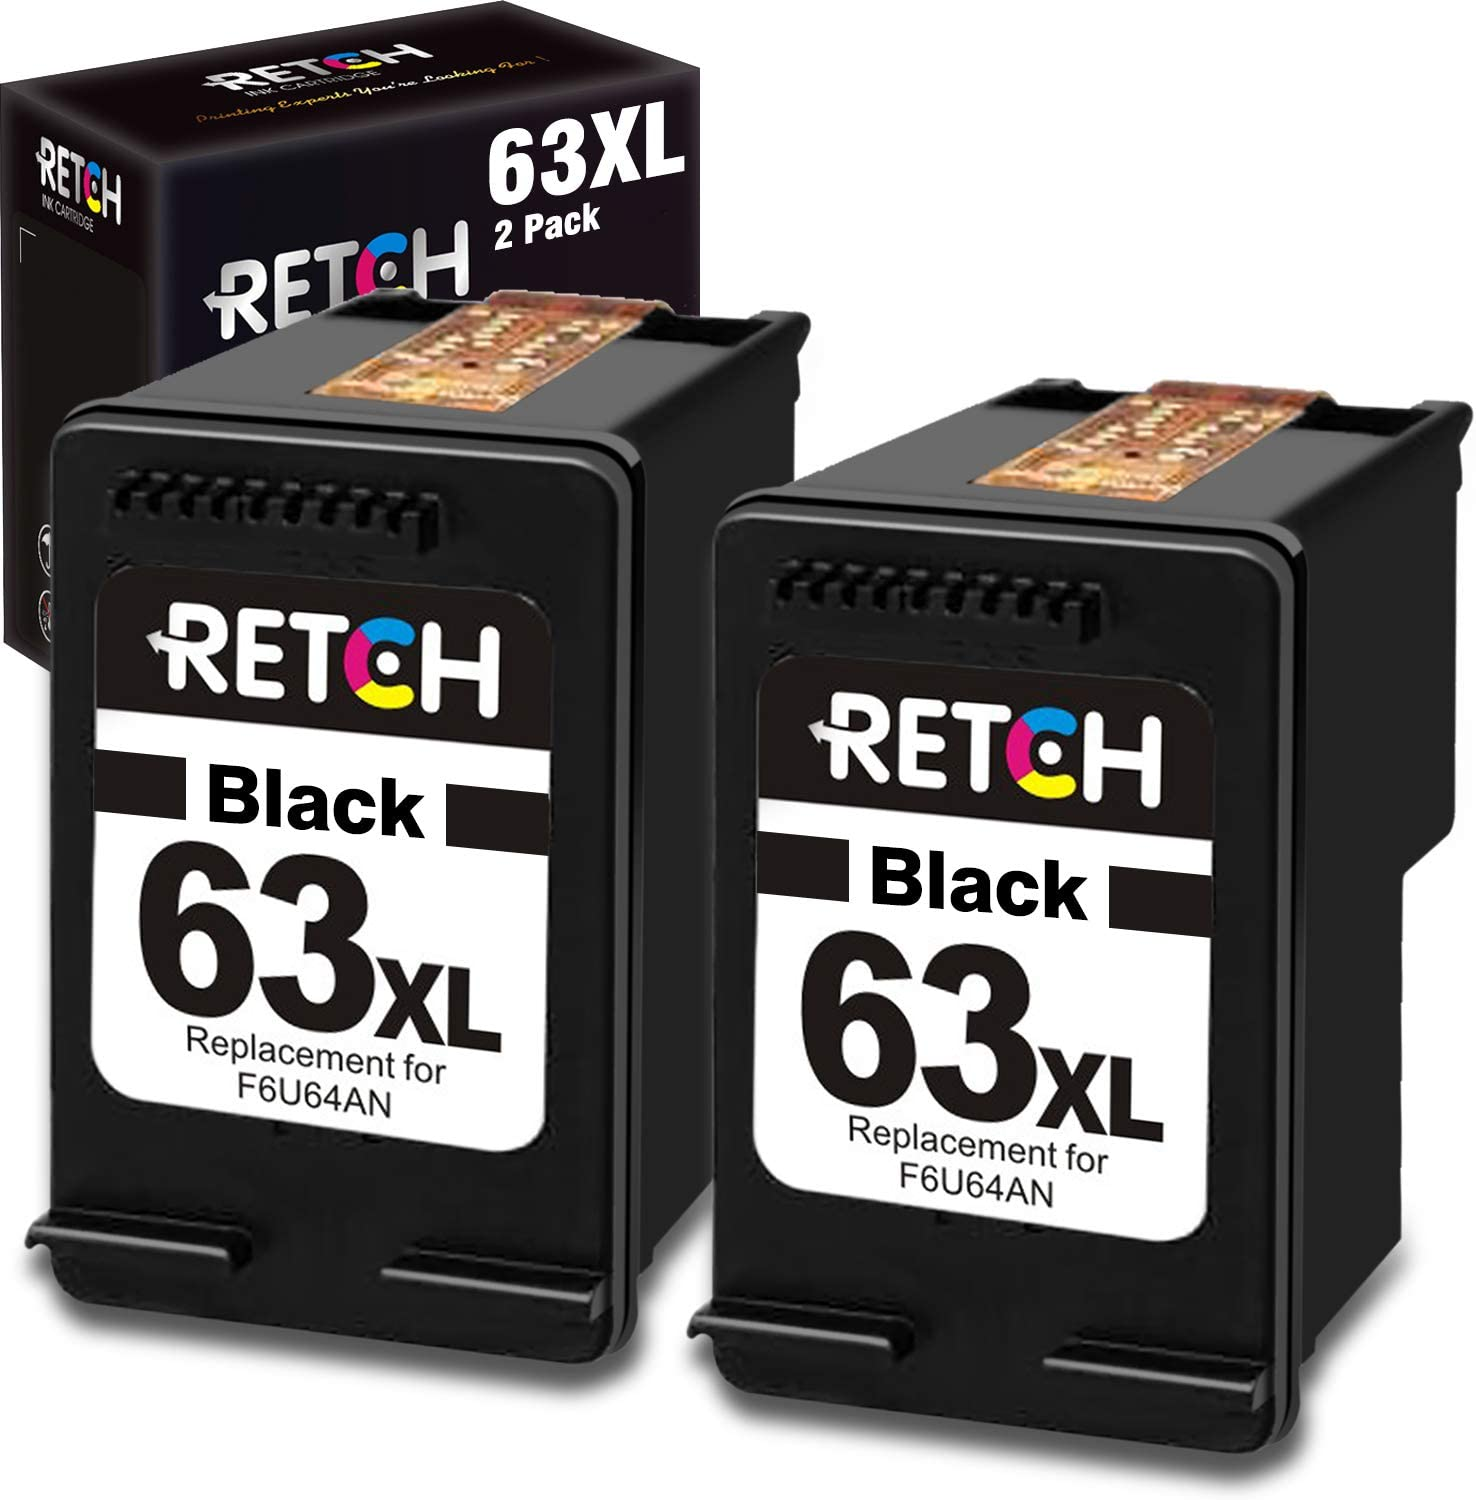 RETCH Remanufactured Inkjet Printer Ink Cartridges Tray Replacement for HP 63XL F6U63AN for Envy 4520 4516 Officejet 5255 5258 5220 3830 4650 3831 3833 4655 DeskJet 1112 3630 3632 3633 3634 2130 2132